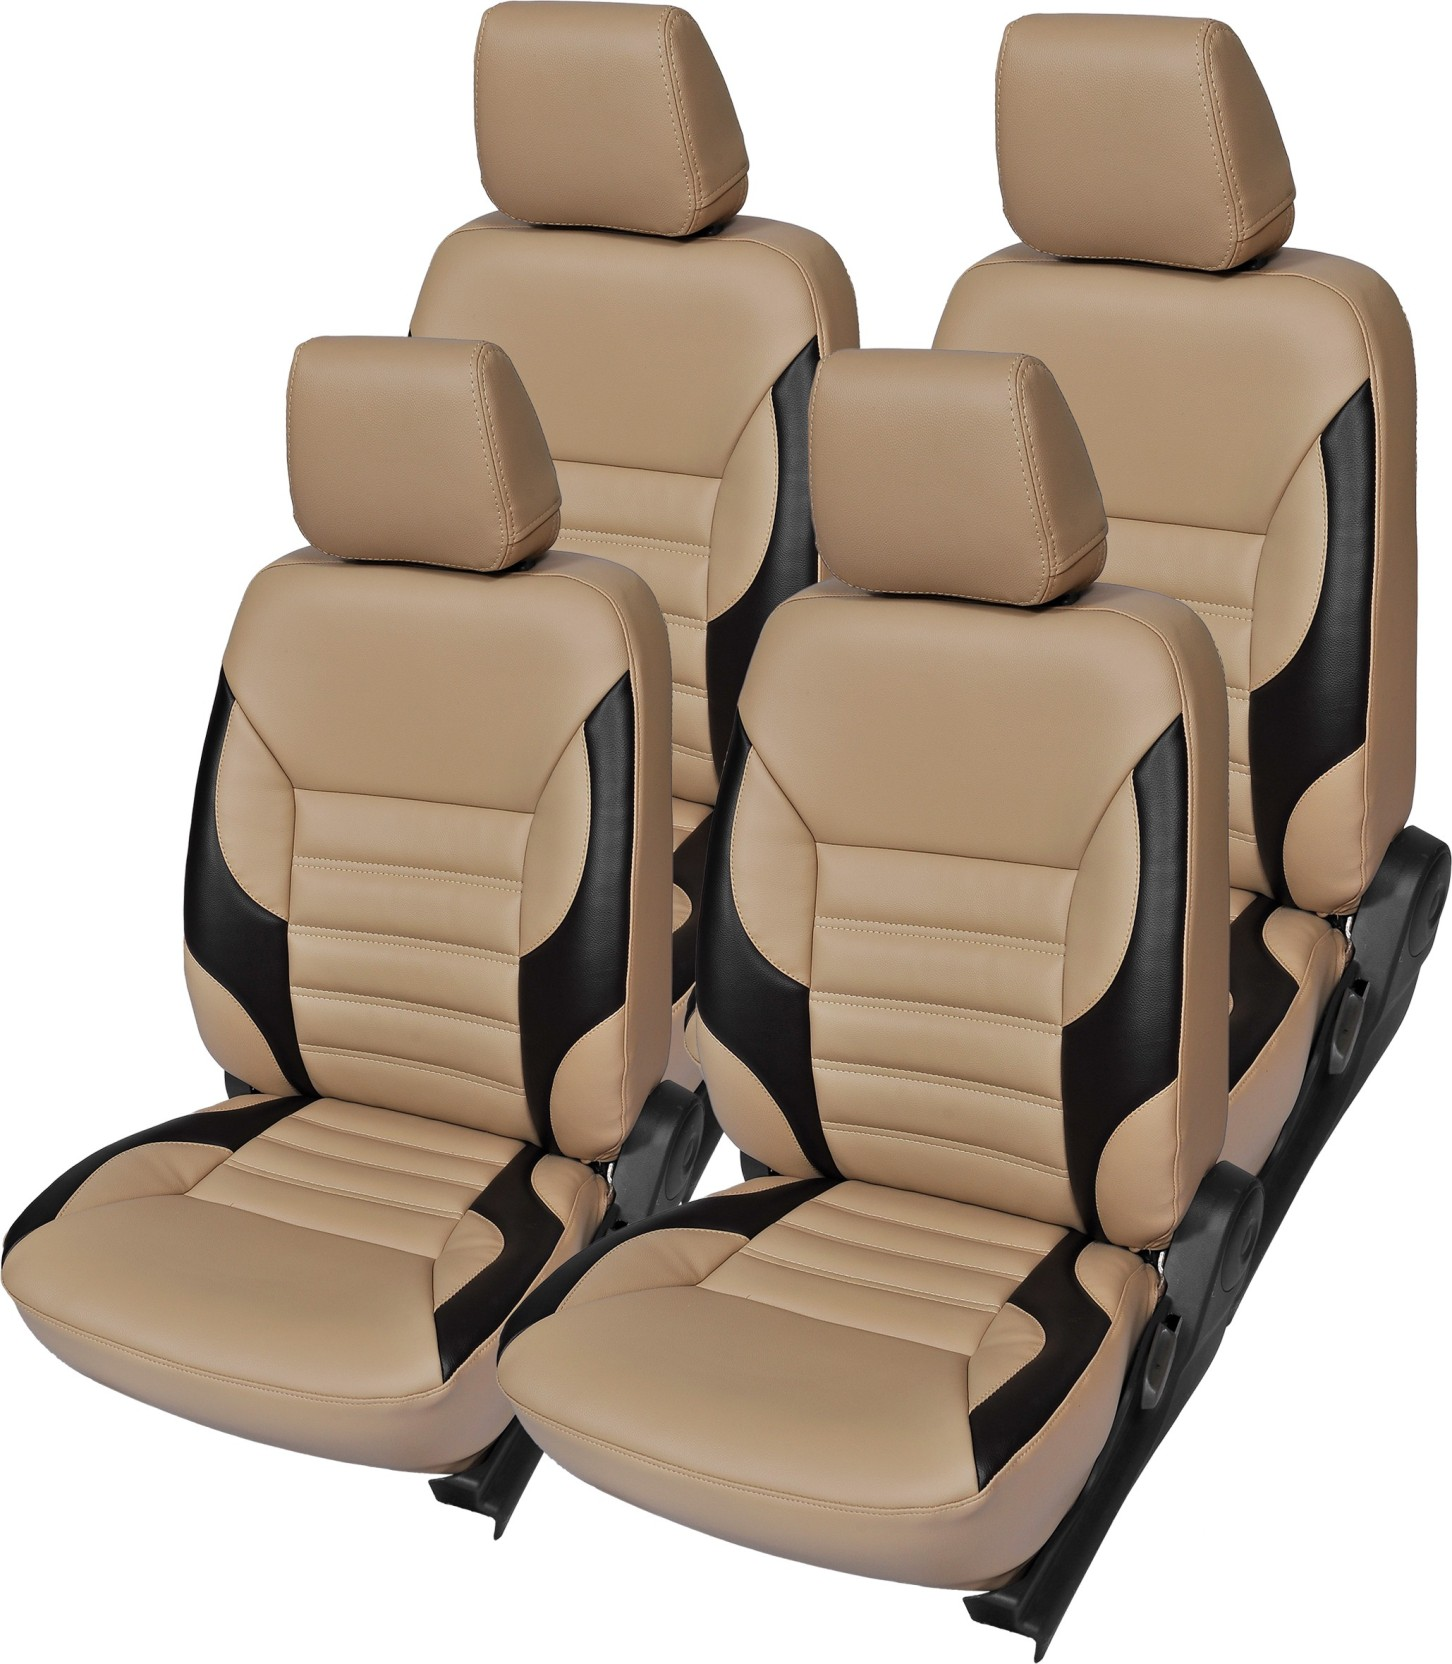 Gaadikart Leatherette Car Seat Cover For Mahindra XUV 500